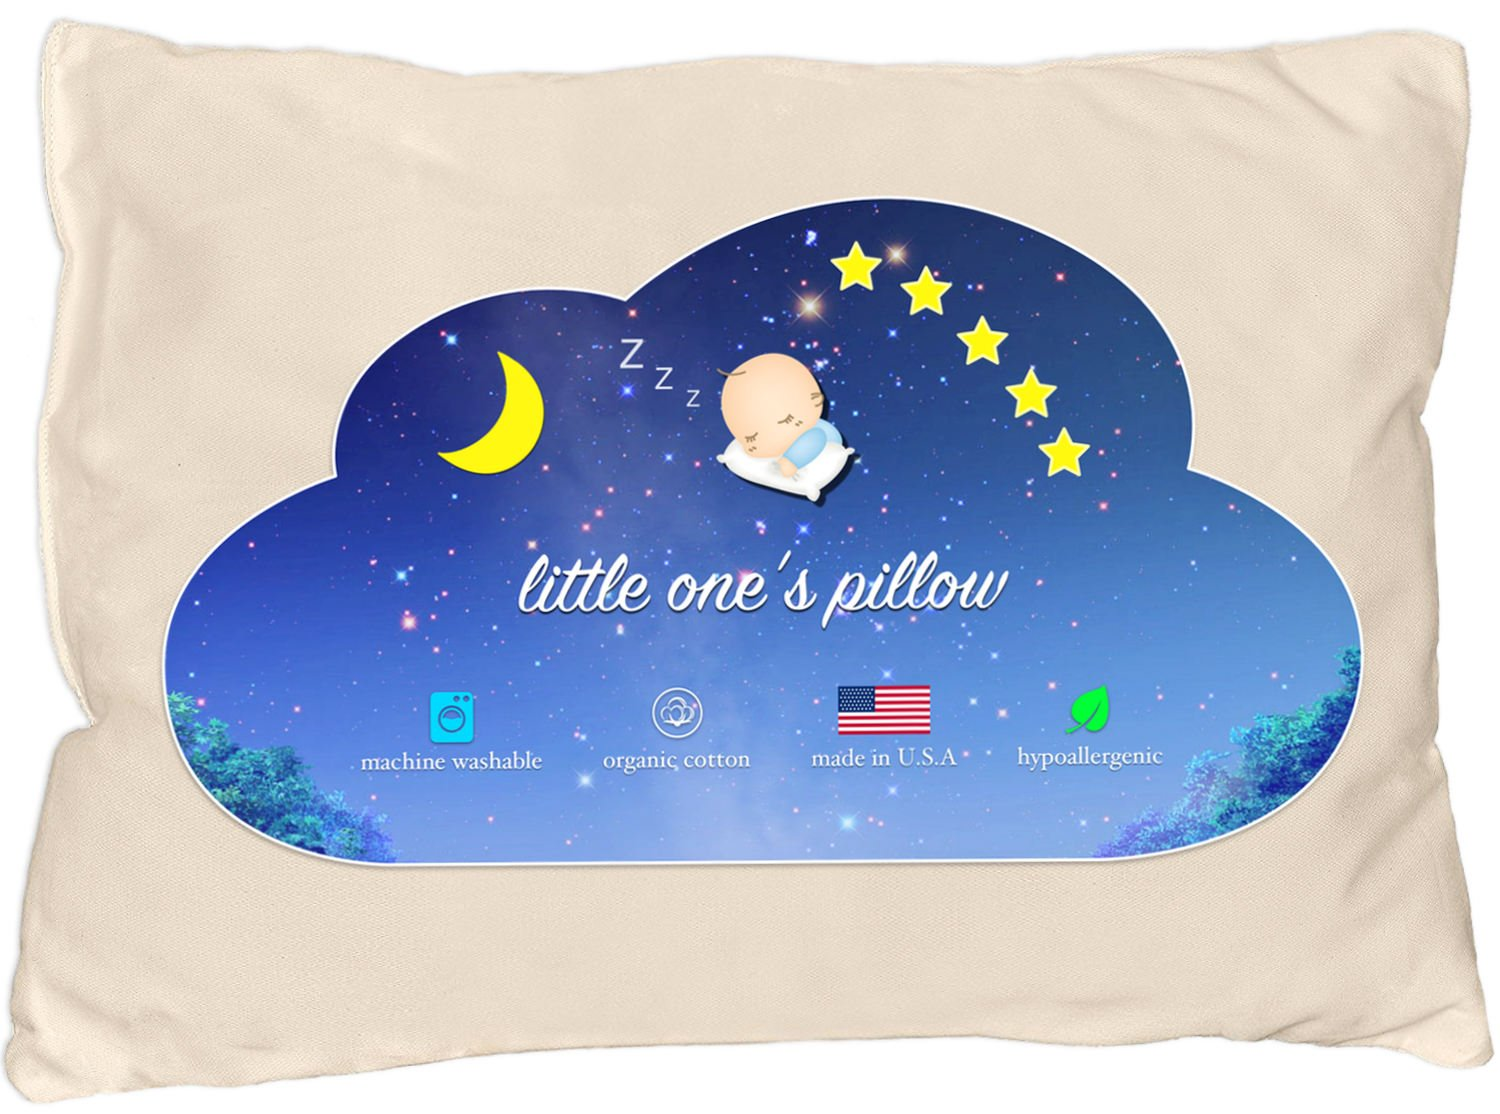 Little One's Pillow - Toddler Pillow, Delicate Organic Cotton Shell, HandCrafted in USA - Soft Yet Supportive, Washable and Hypoallergenic, No Pillowcase Needed, 13 X 18 by Little One's Pillow